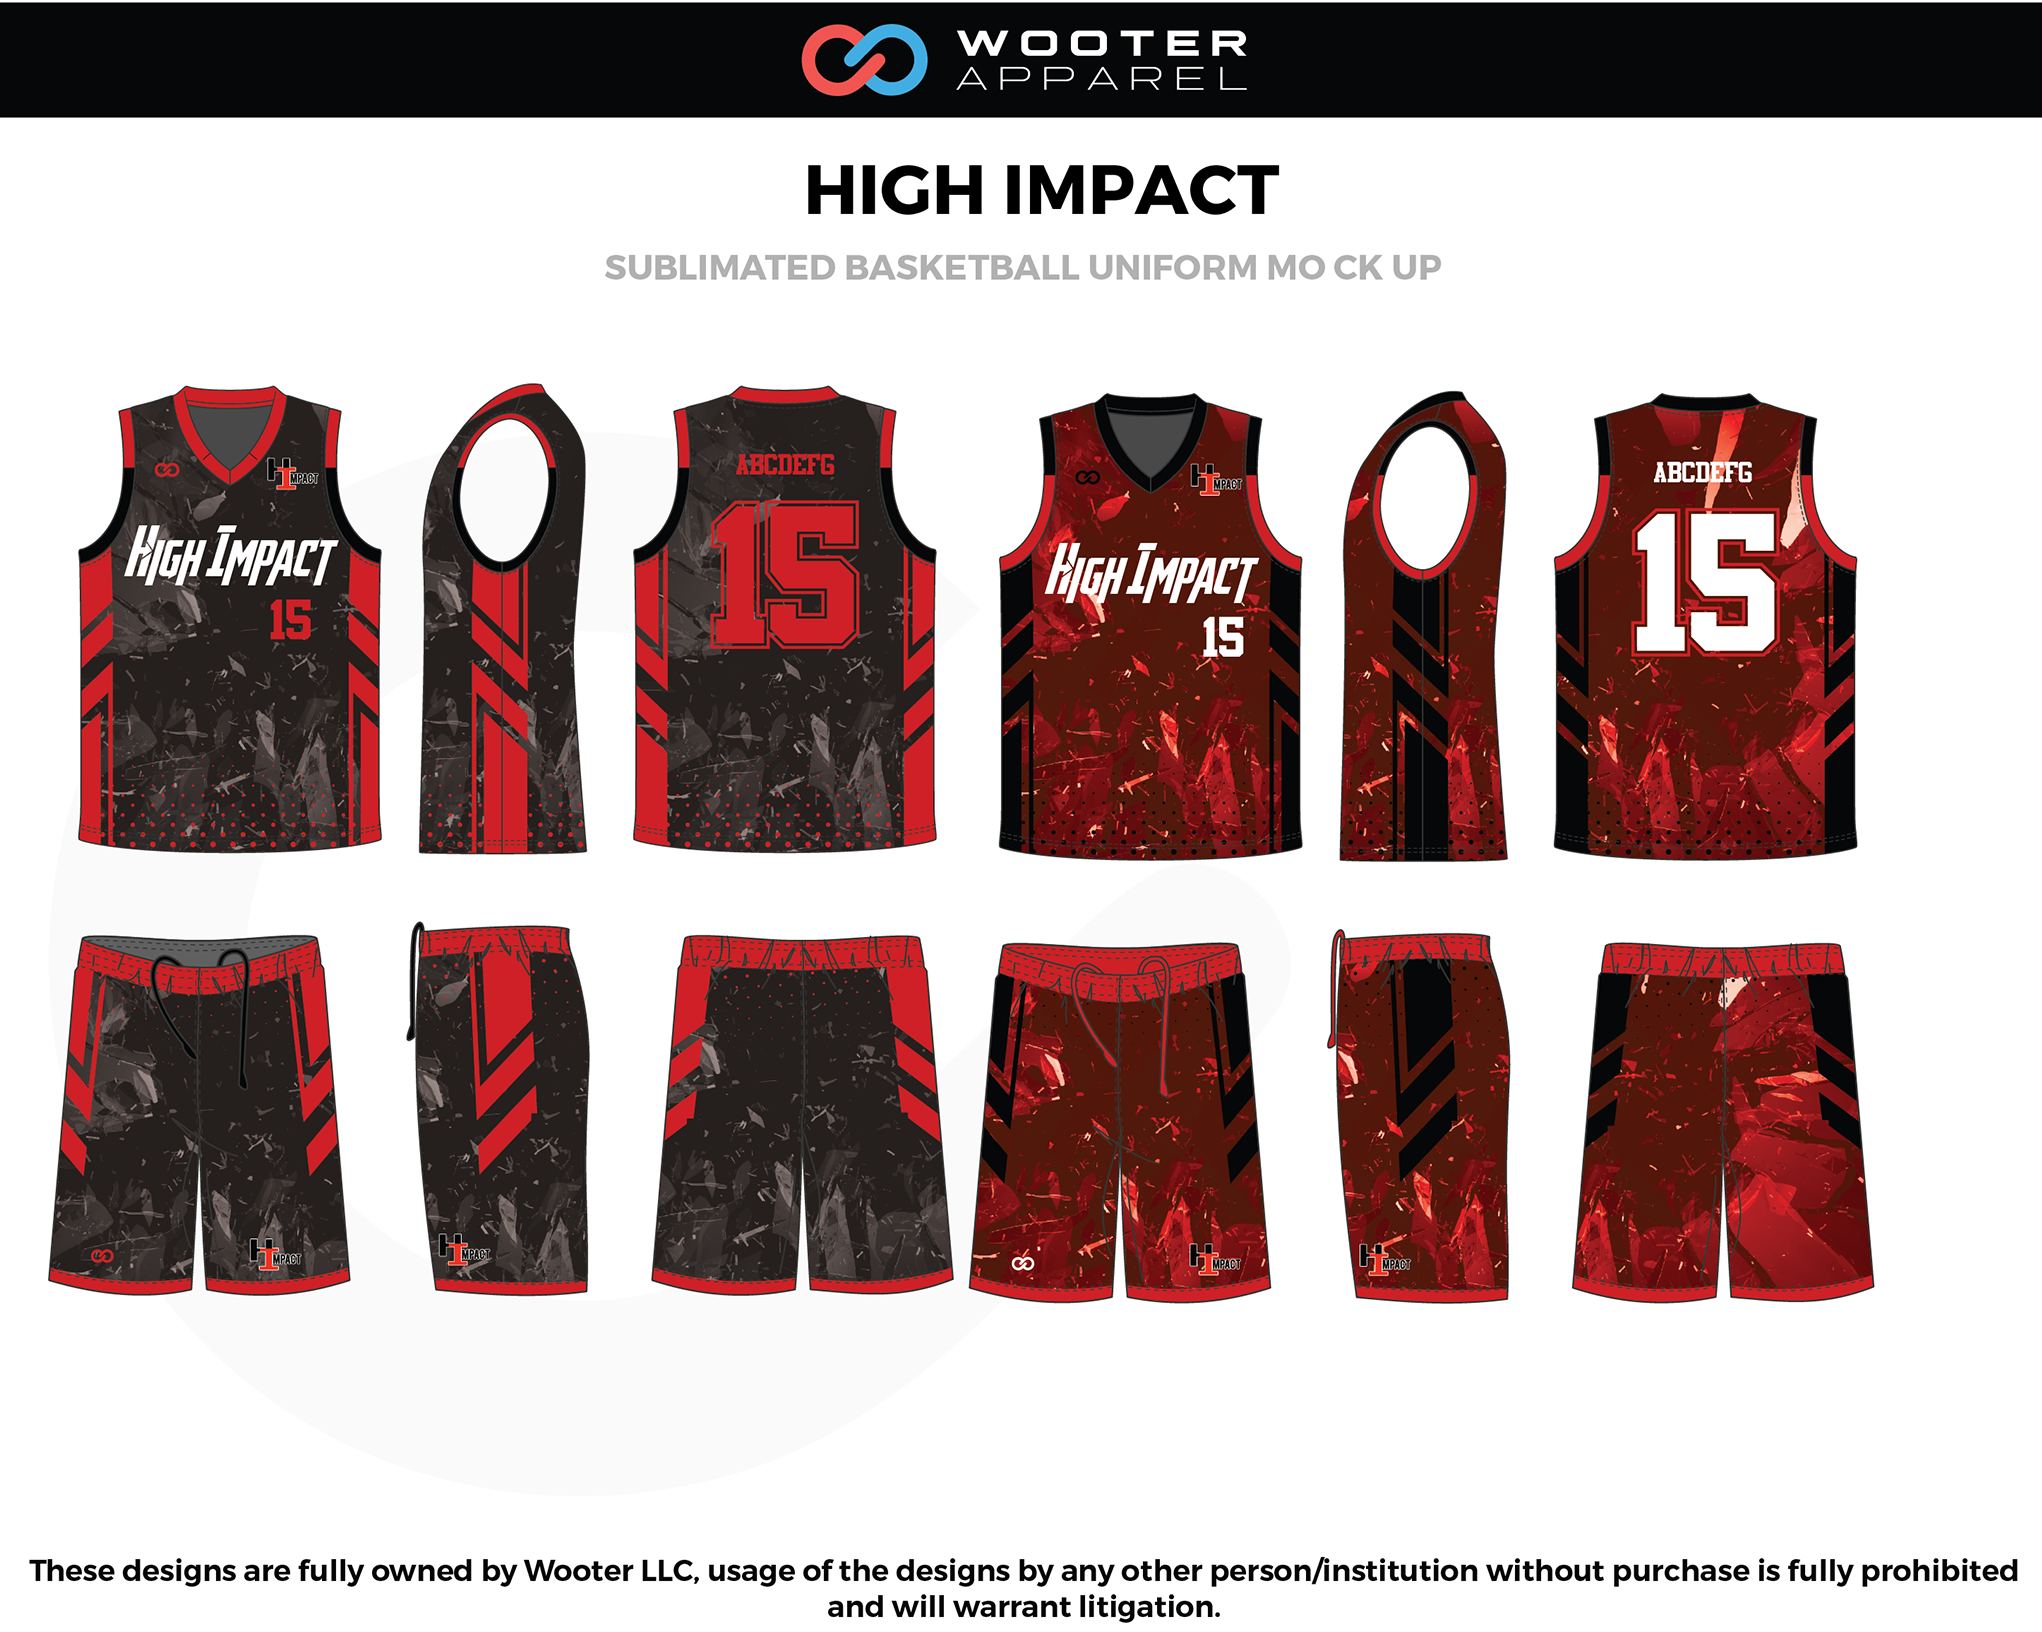 HIGH IMPACT Red Black Grey White Basketball Uniform, Jersey and Shorts